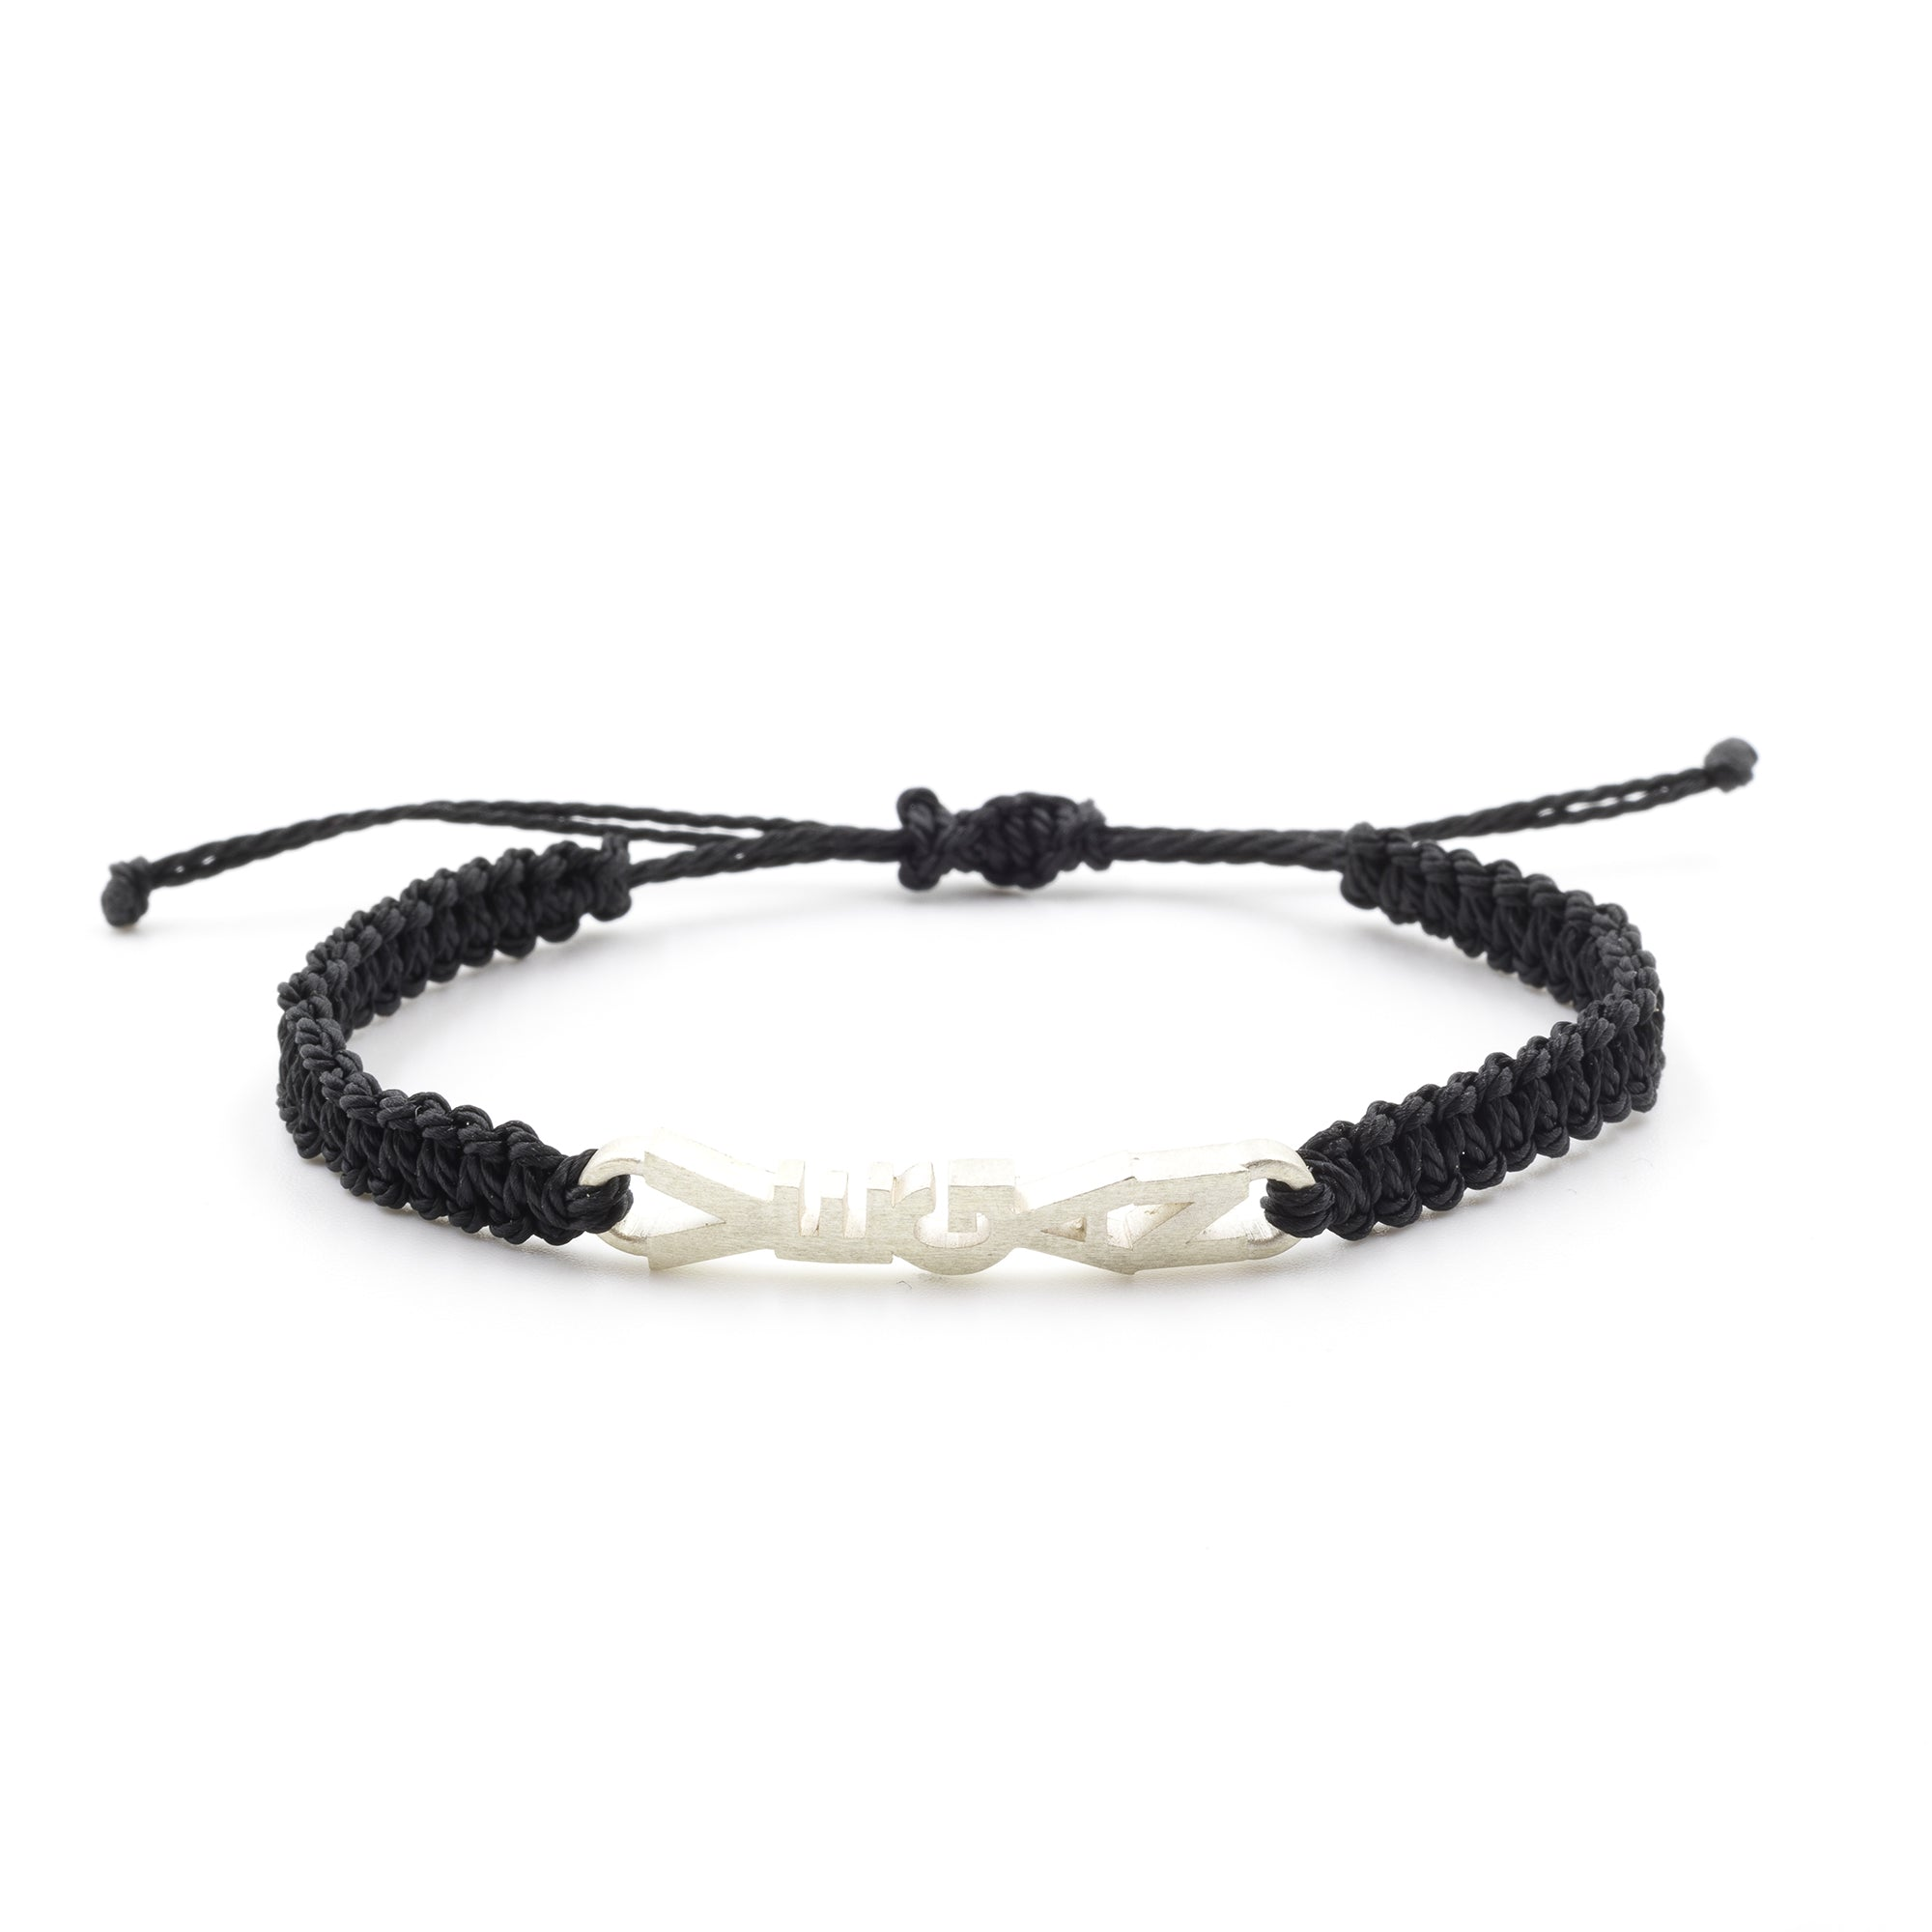 Vegan bracelet black